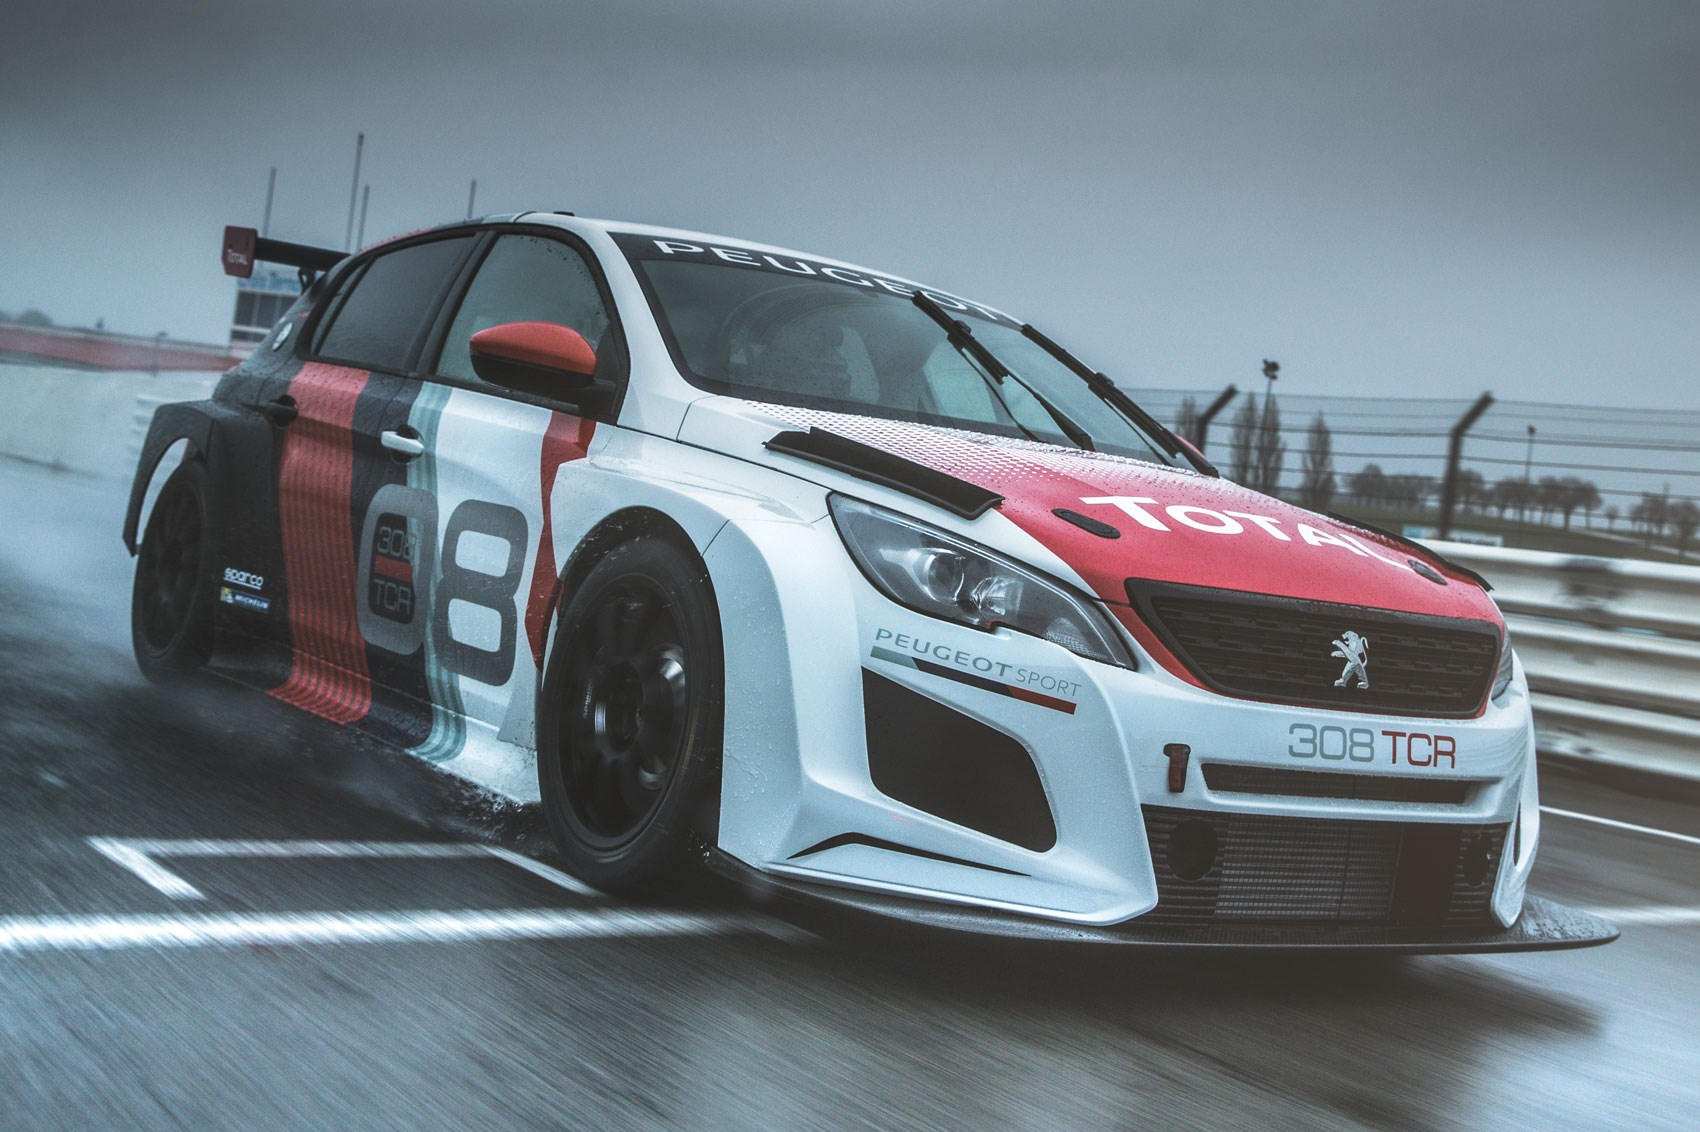 Peugeot 308TCR 2018 race car: pics, specs and price | CAR ...